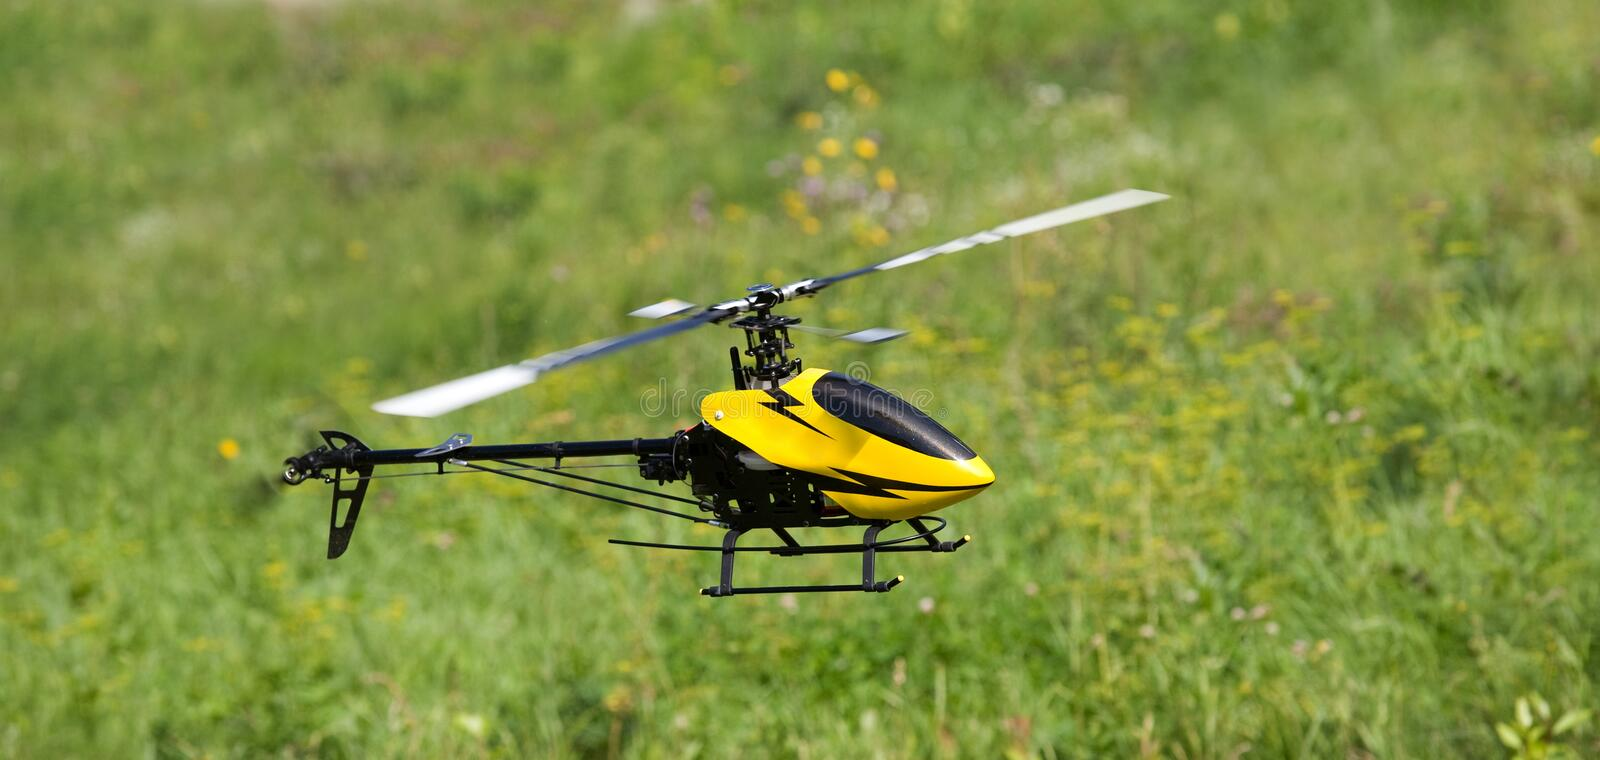 Rc helicopter. Rc controlled helicopter hovering above grass royalty free stock photography